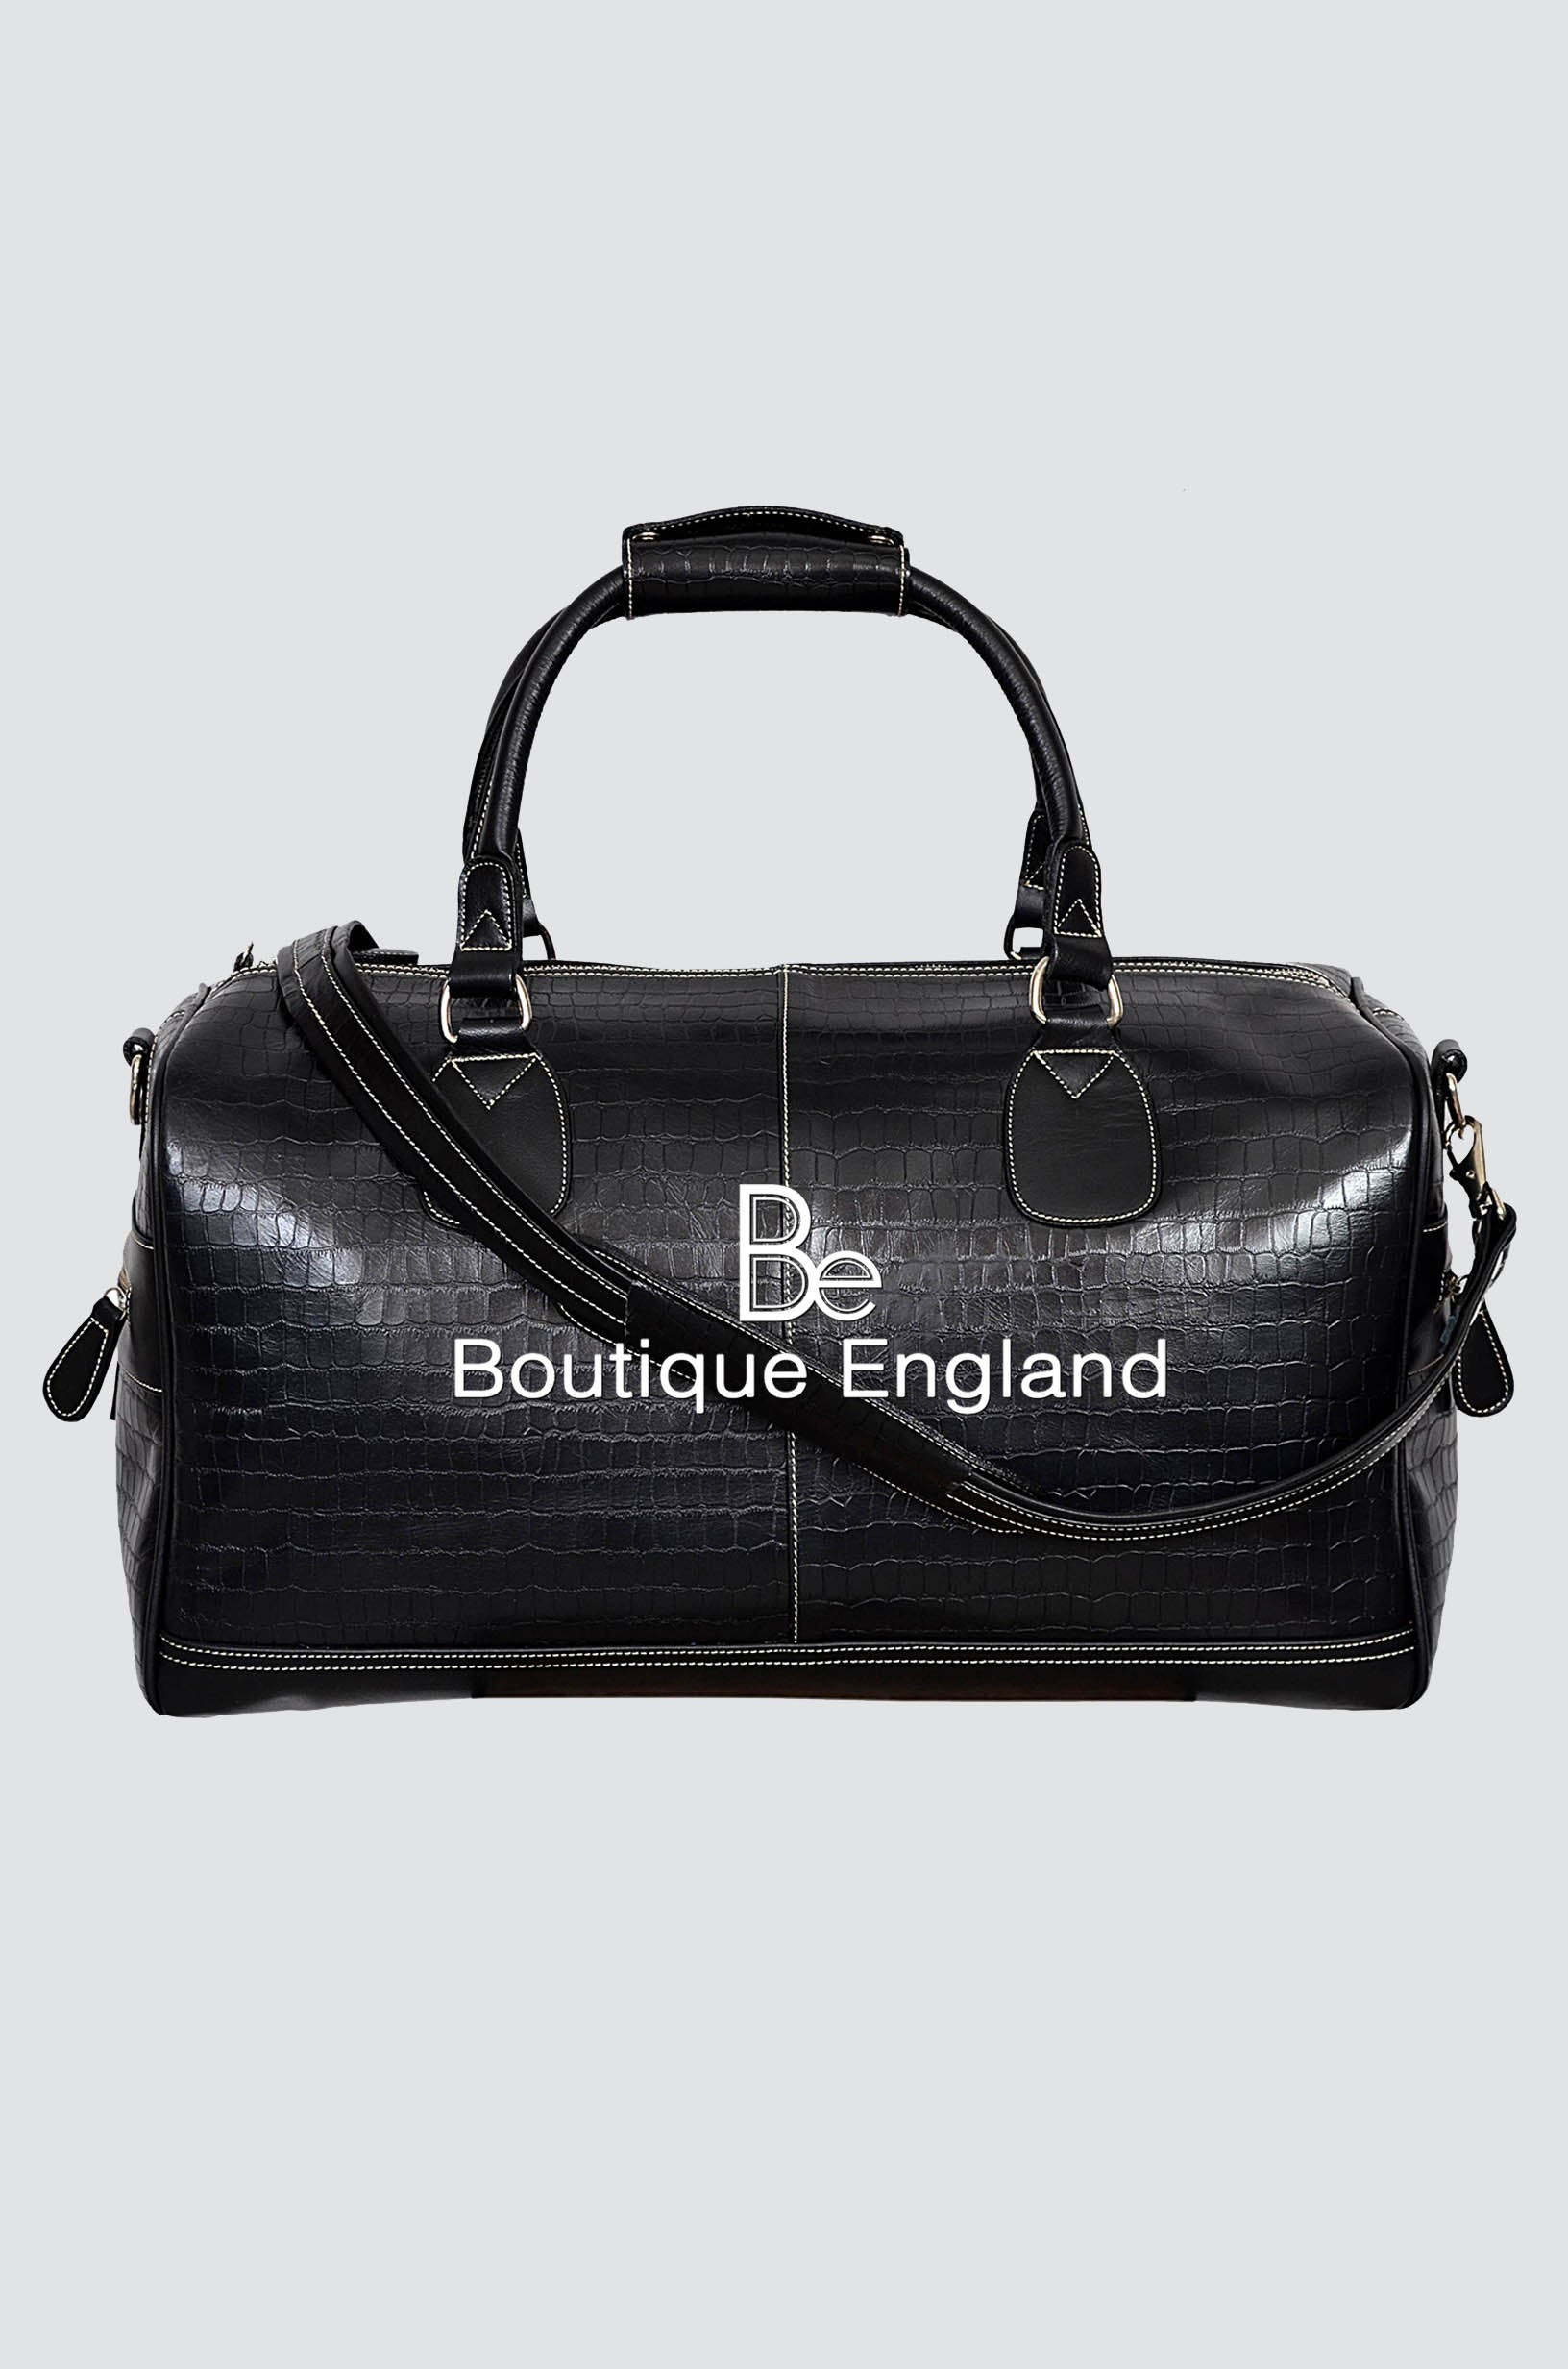 NEW 'DUFFLE' LARGE WEEKEND Black CROC HOLDALL TRAVEL GYM REAL GENUINE LEATHER BAG